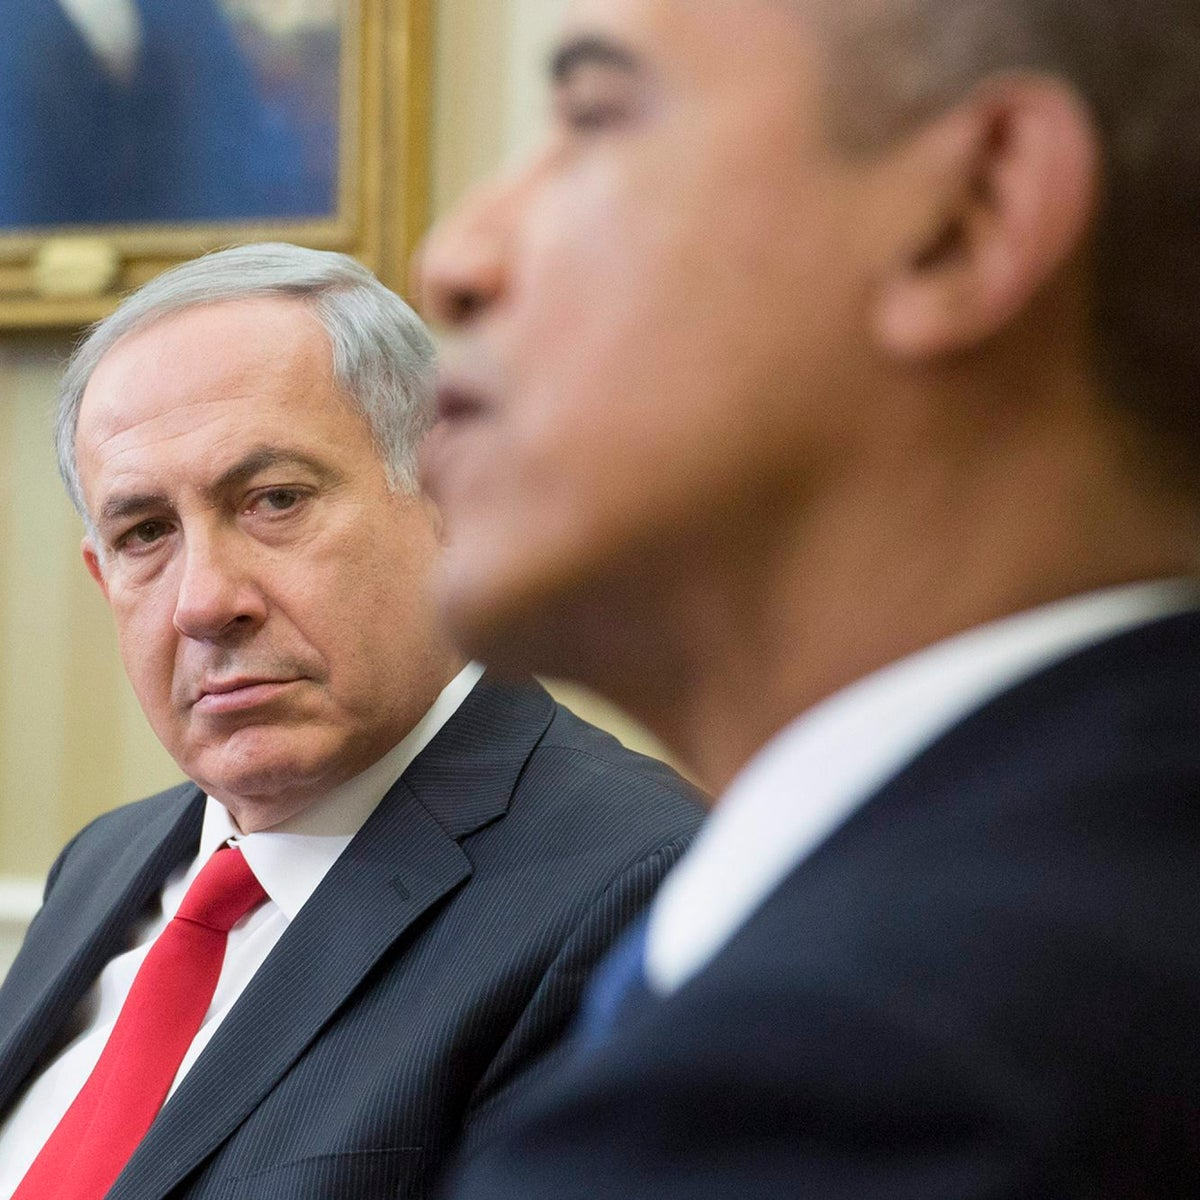 Prime Minister Benjamin Netanyahu looking on as then-U.S. President Barack Obama speaks in the White House in Washington, March 3, 2014.